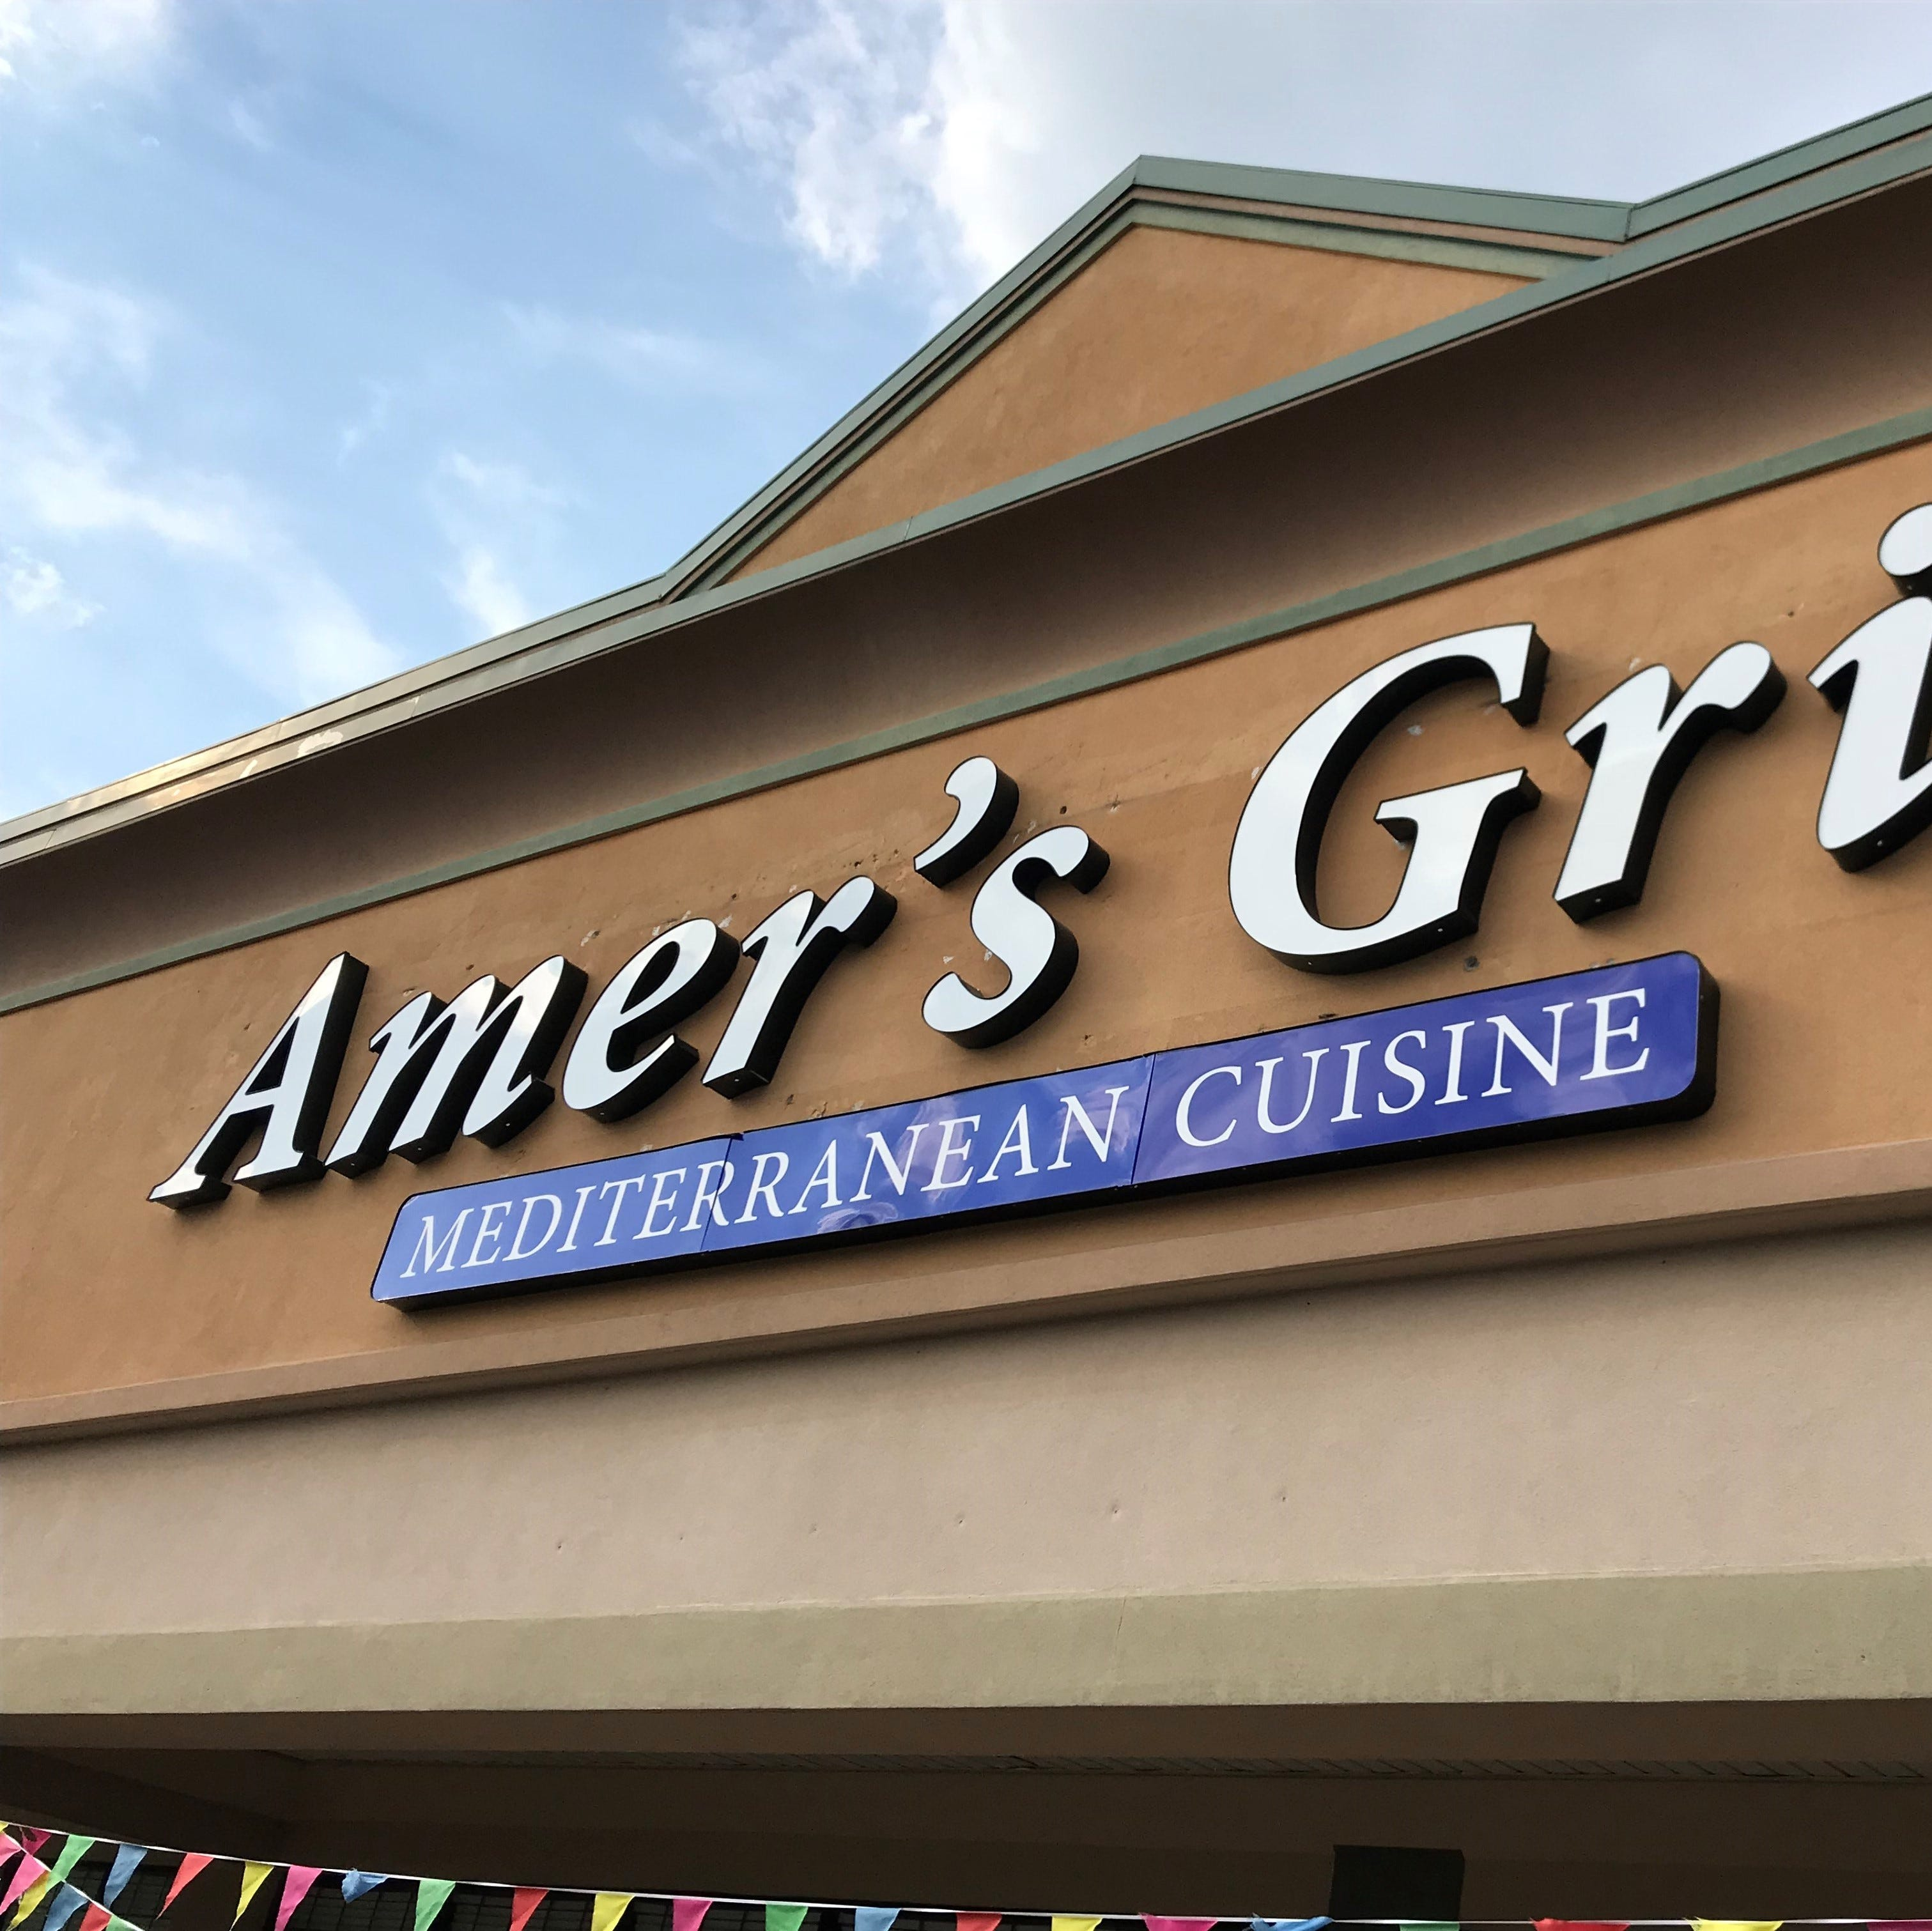 Amer's Grill Mediterranean Cuisine recently opened in the Market Place strip mall on Indiana 38 just east of U.S. 52. It offers a nice change from the American fare of burgers, steak, chicken and pizza.